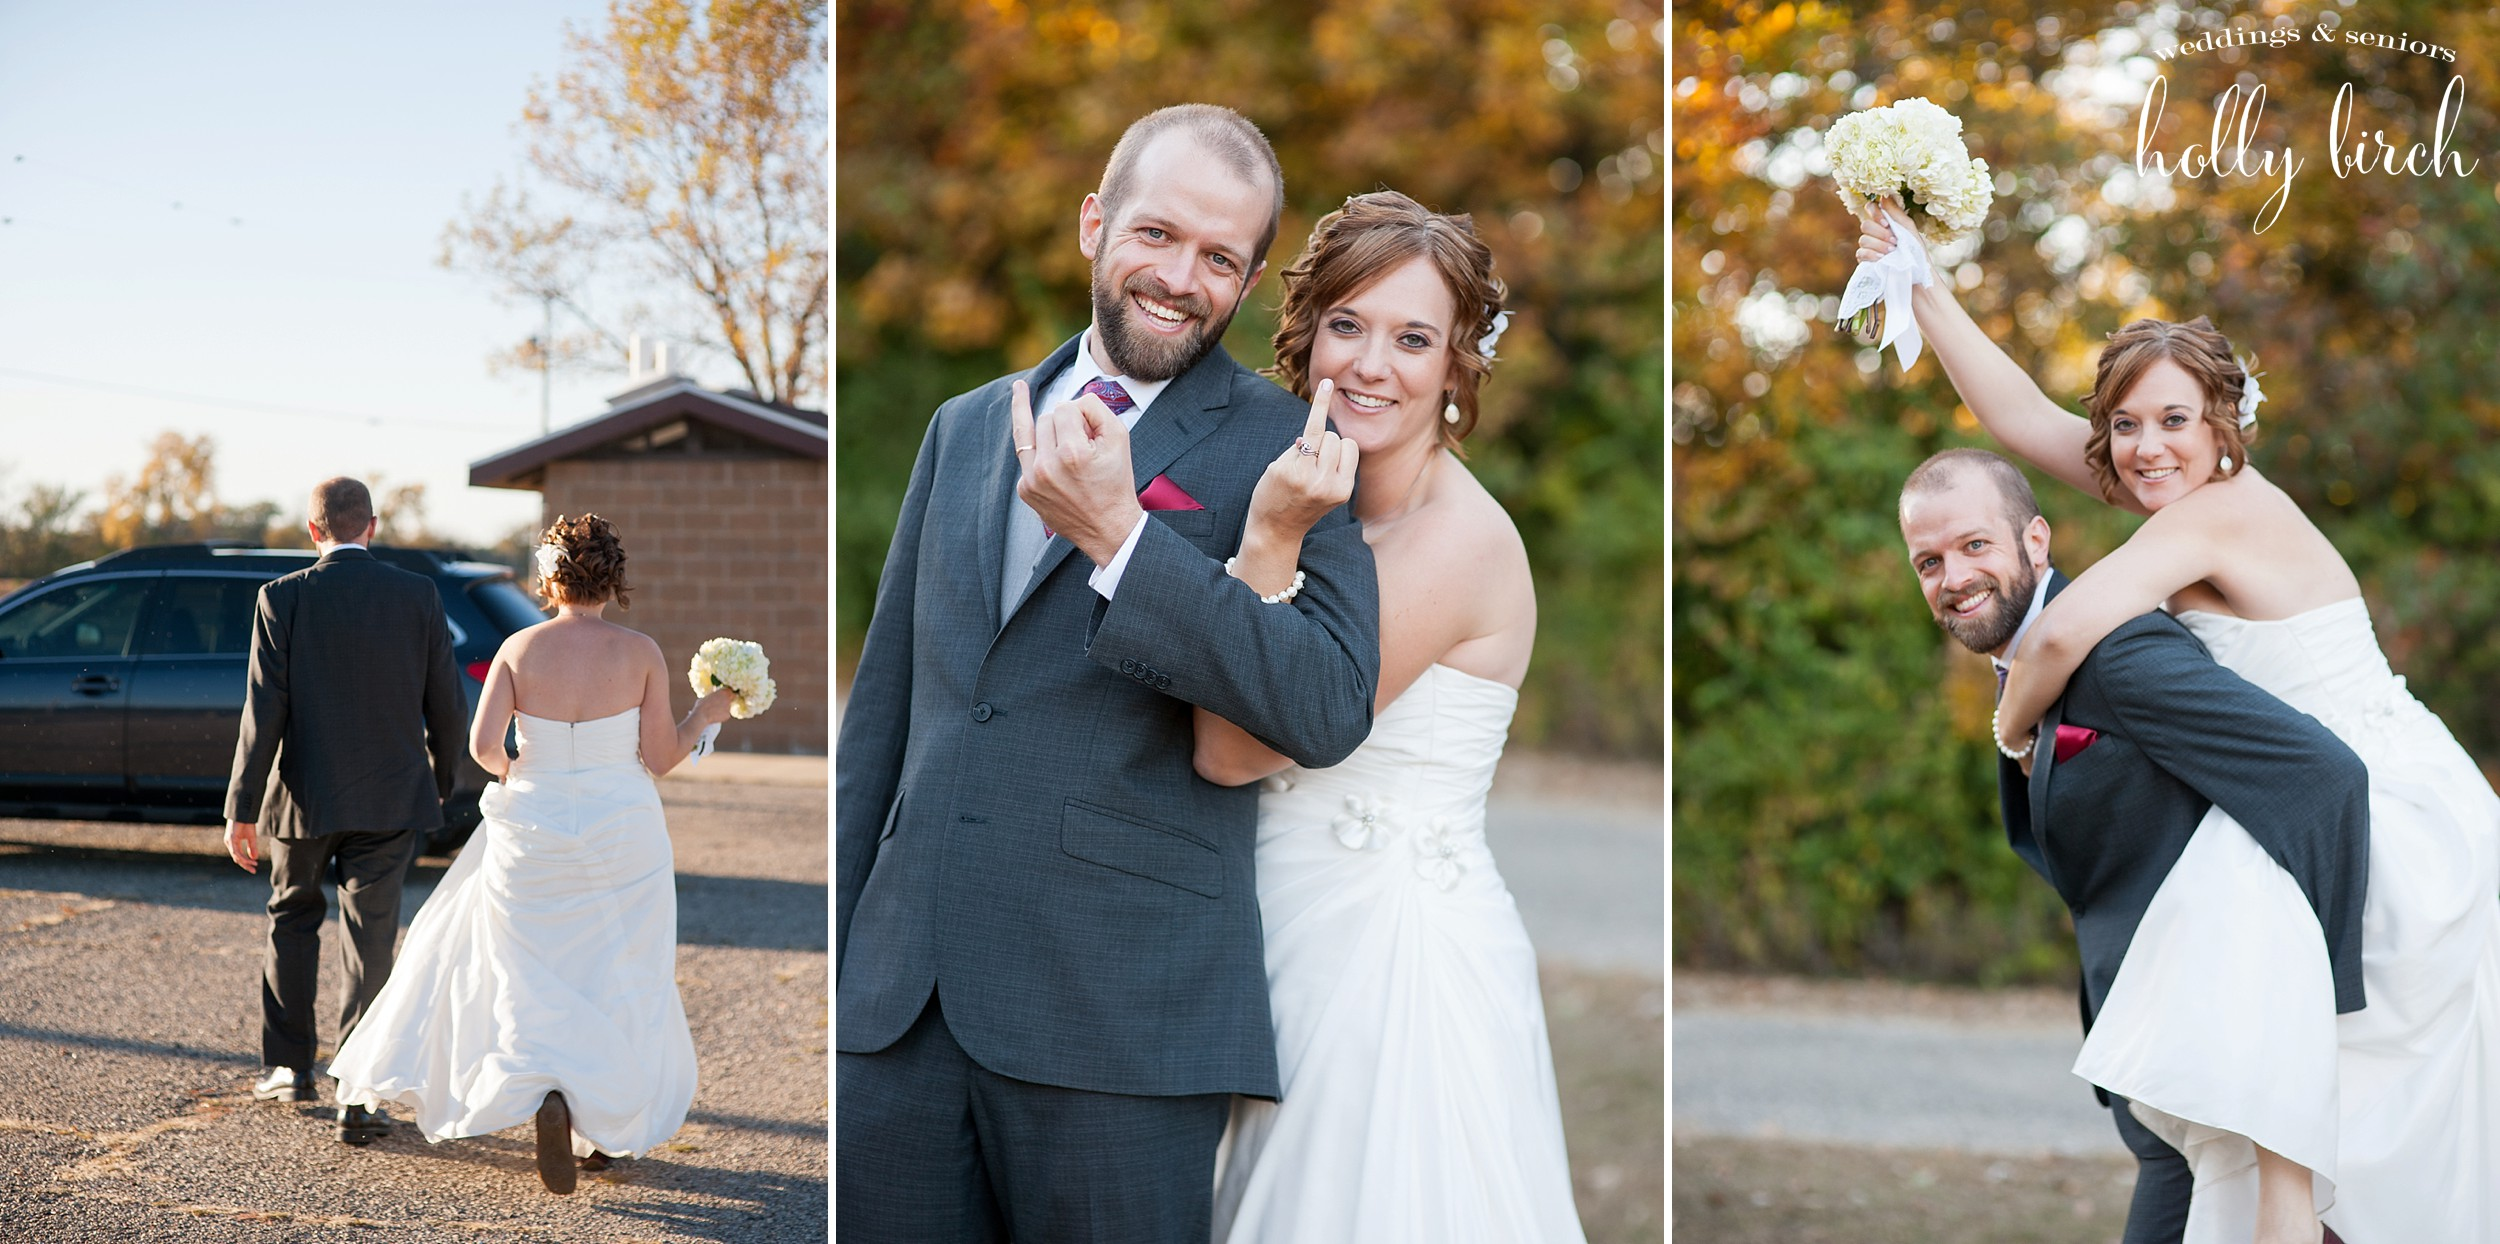 fun bride and groom shots